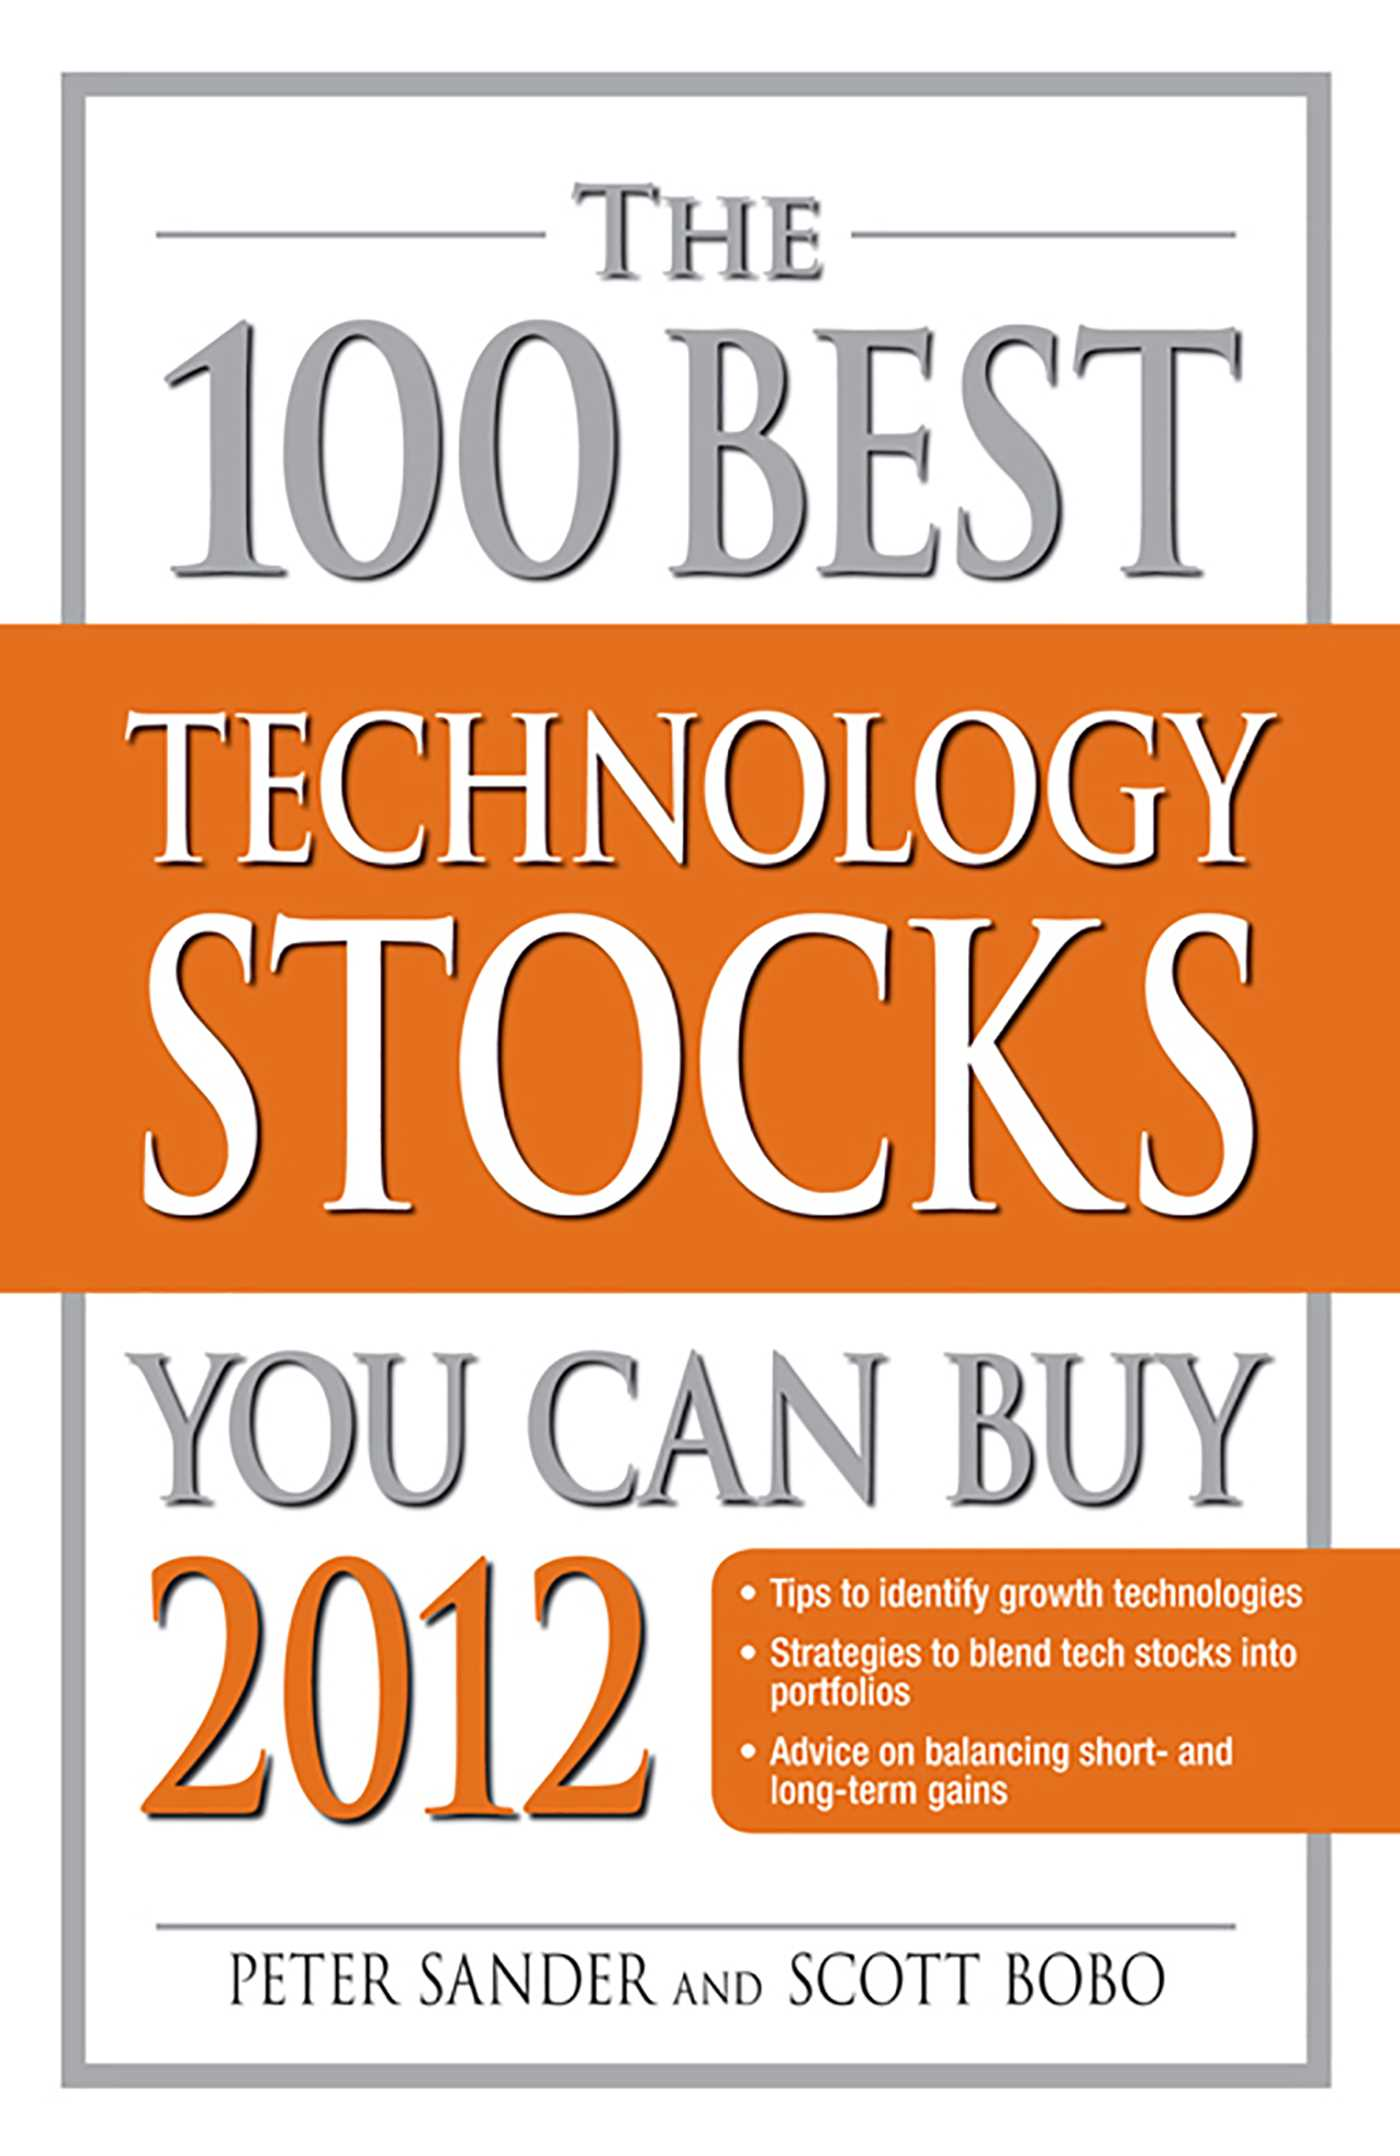 The 100 best technology stocks you can buy 2012 9781440532863 hr